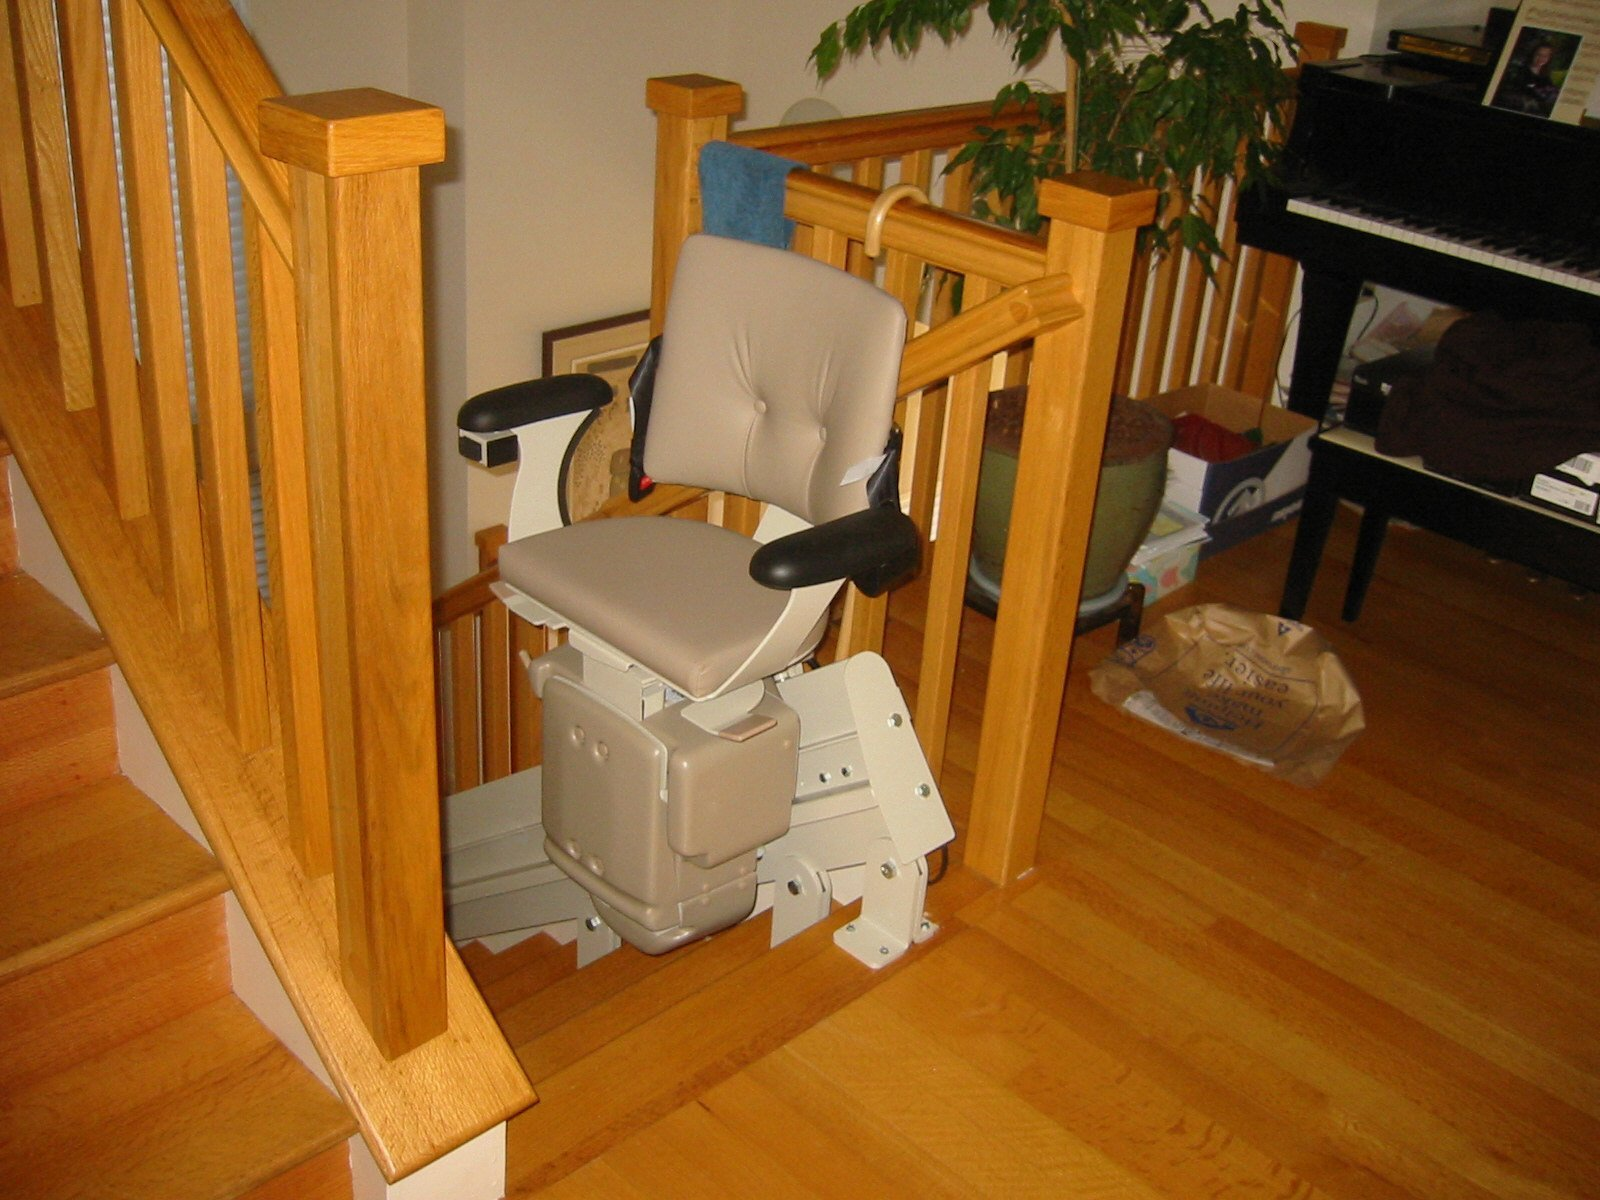 Stair lifts Oakland, CA